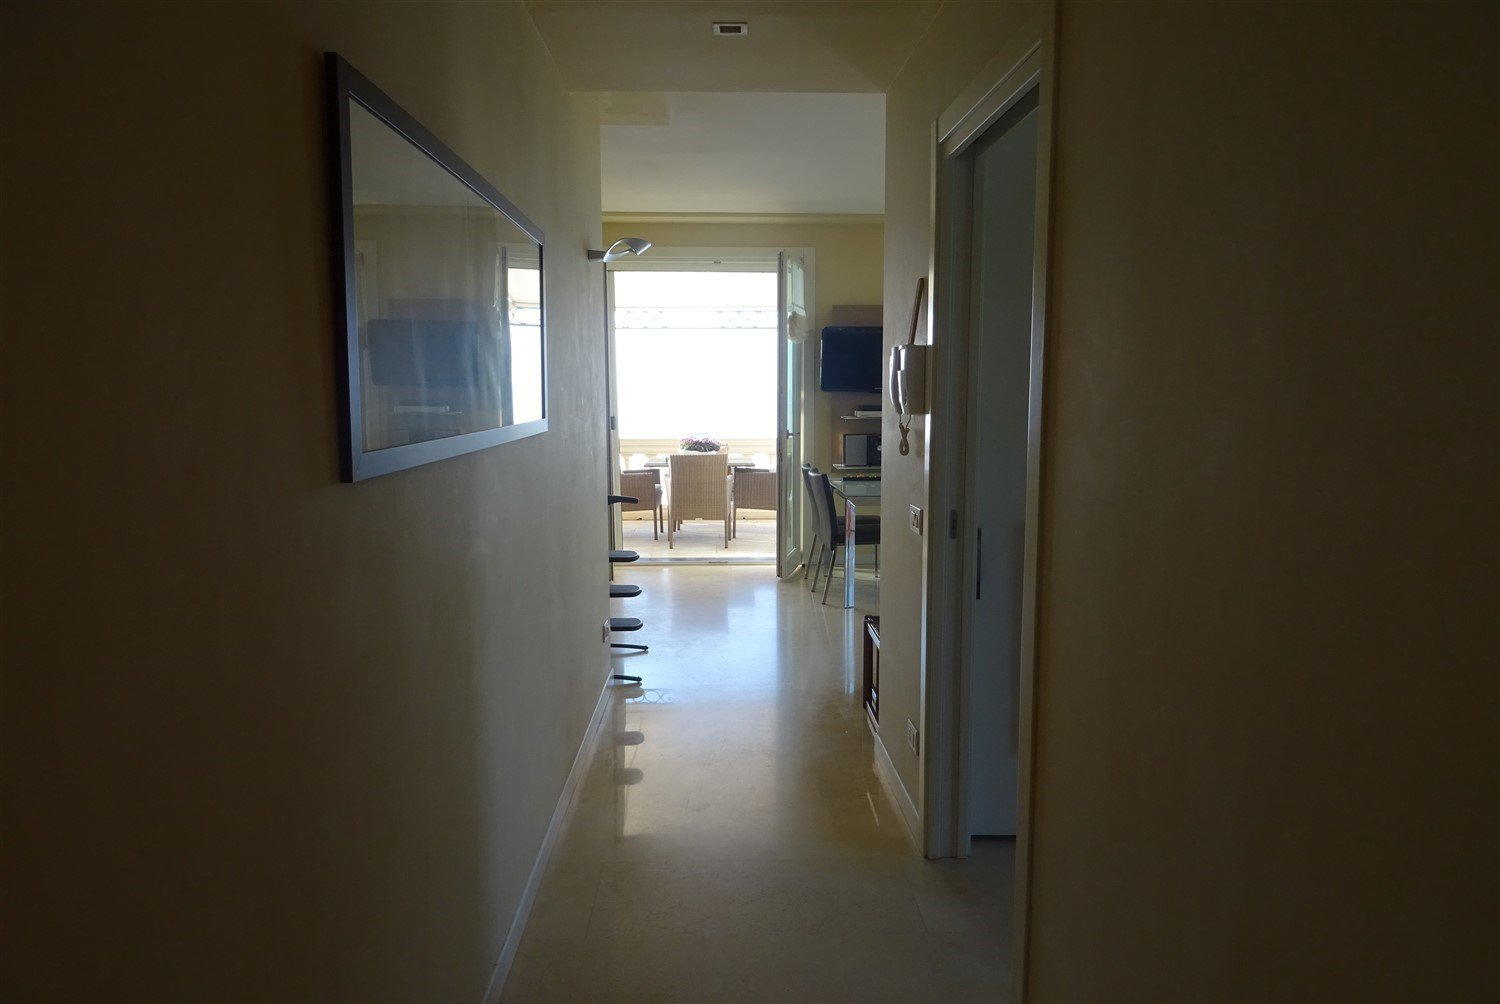 Dream apartment for sale in Sanremo sea view-hallway